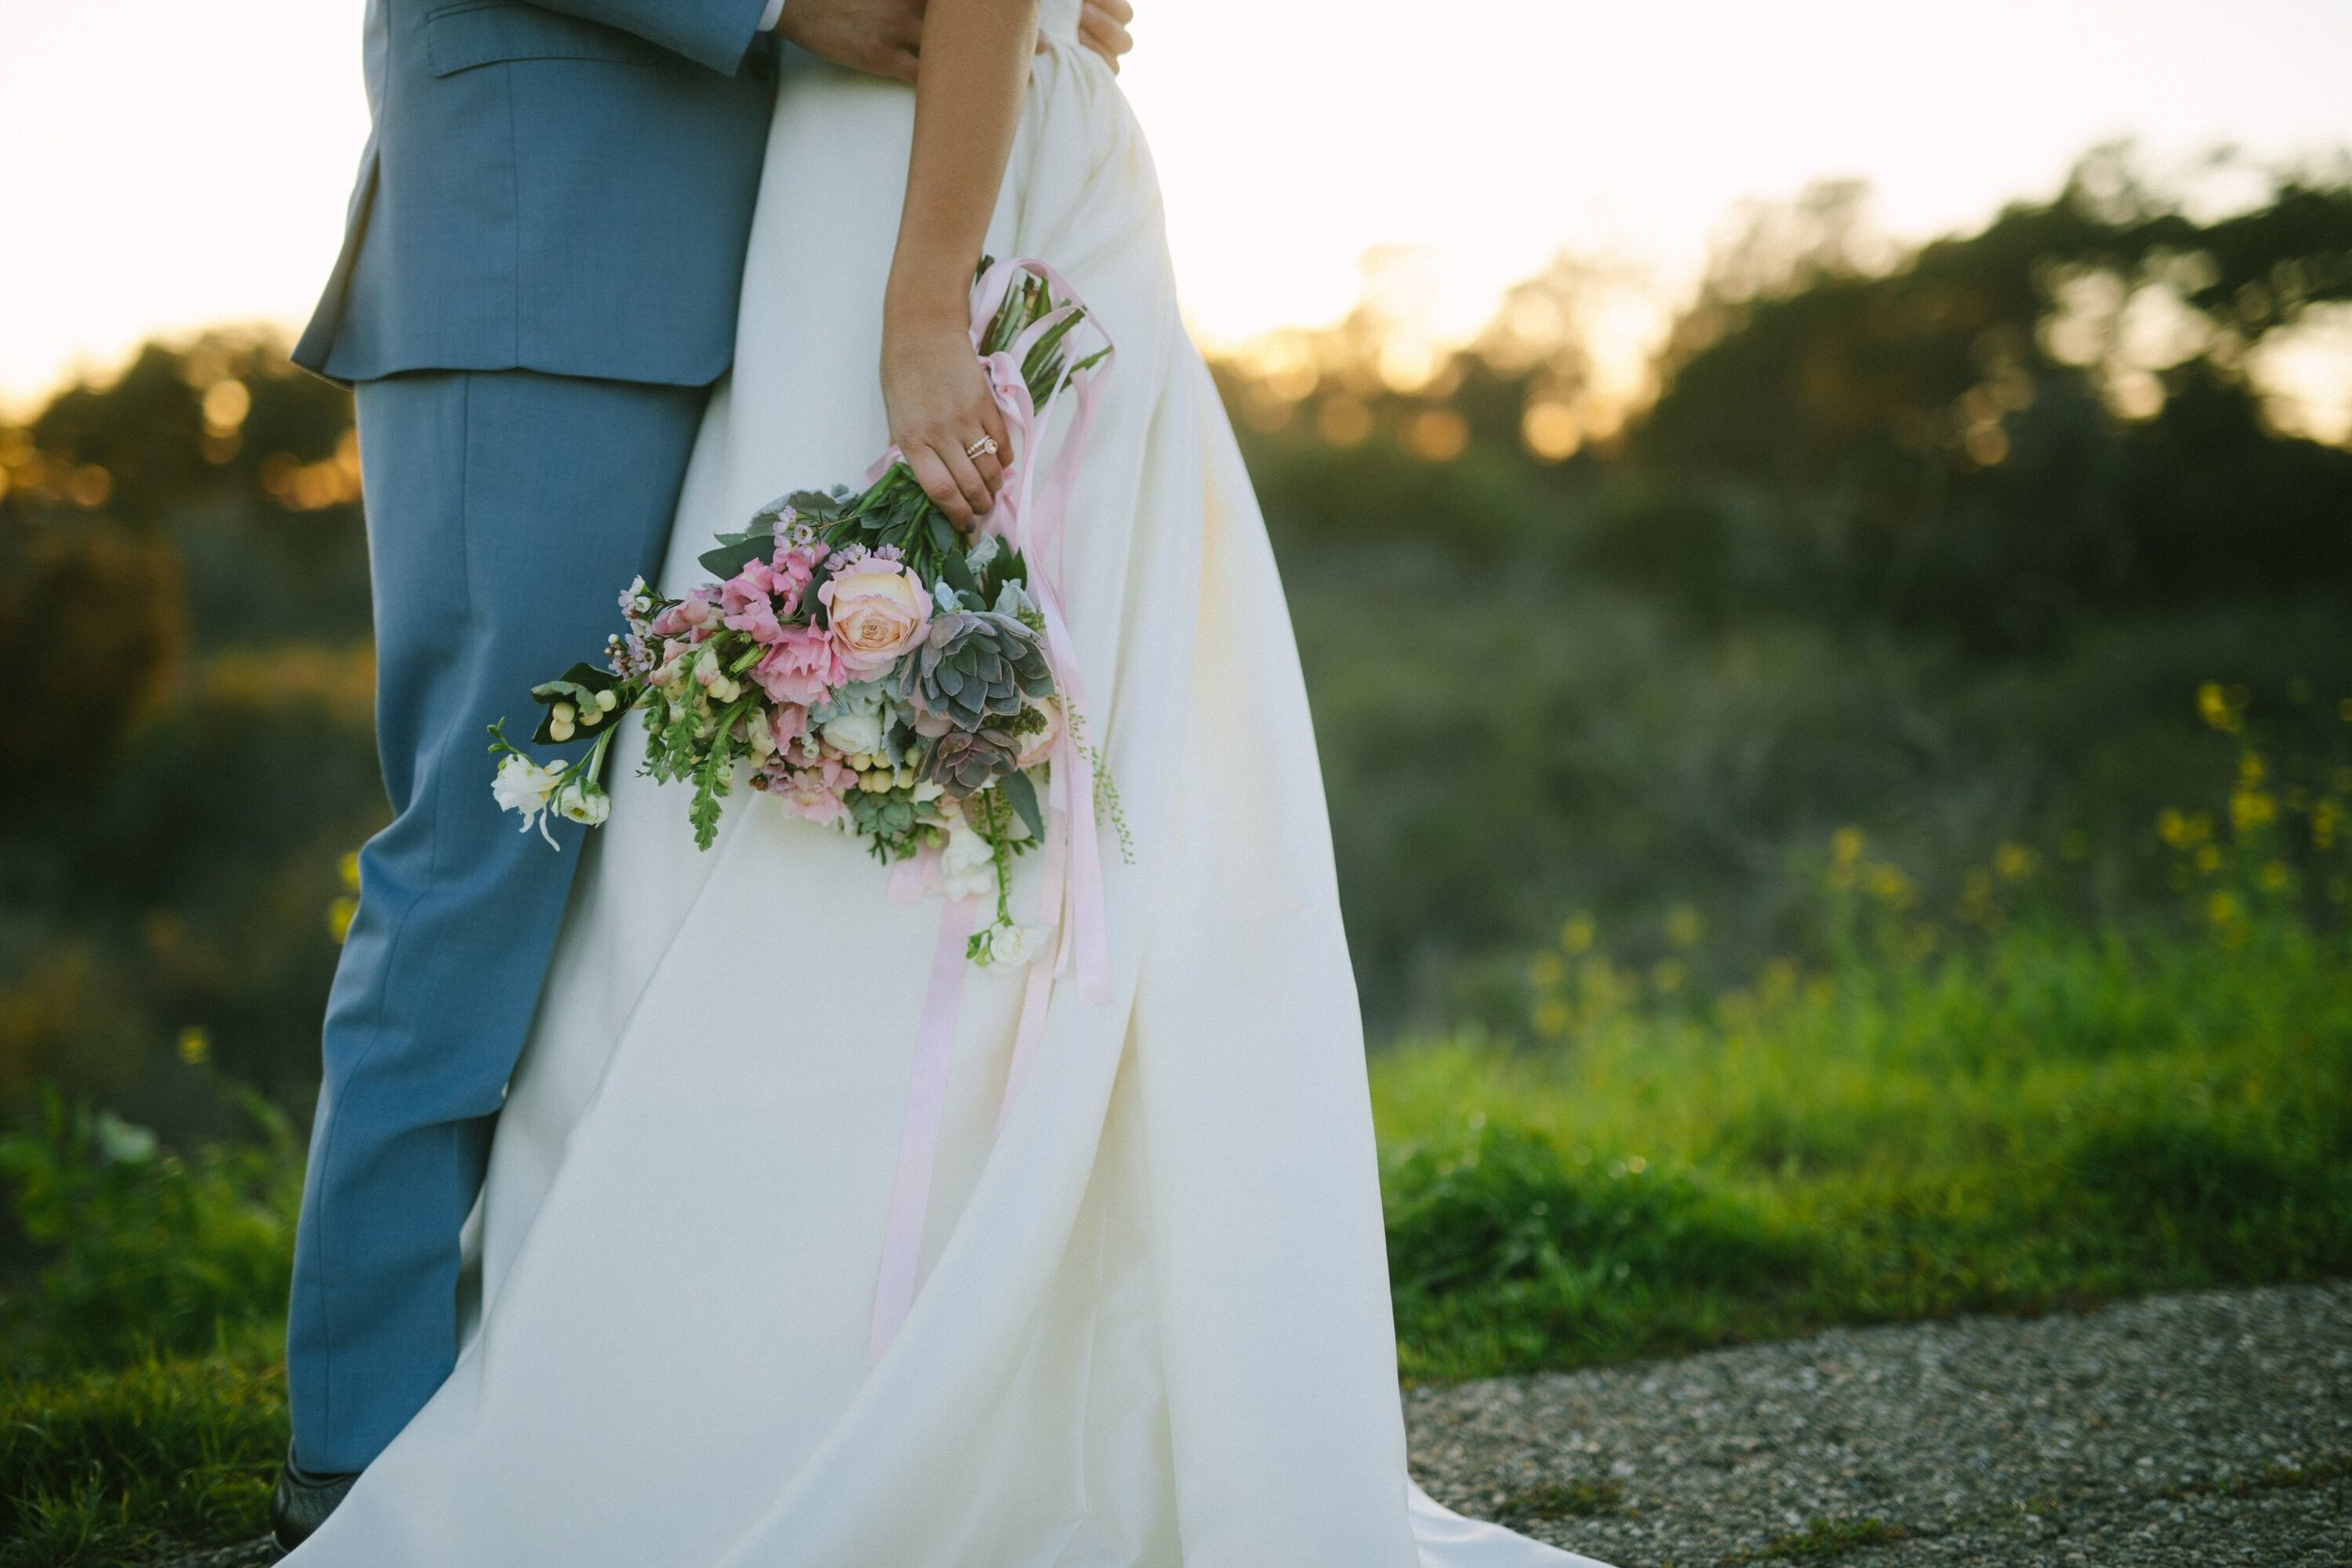 www.santabarbarawedding.com | Photographer: Patrick Ang | Venue: Rancho La Patera & Stow House | Wedding Planner: Elyse Rowen of Elyse Events | Bride and Groom with Bouquet